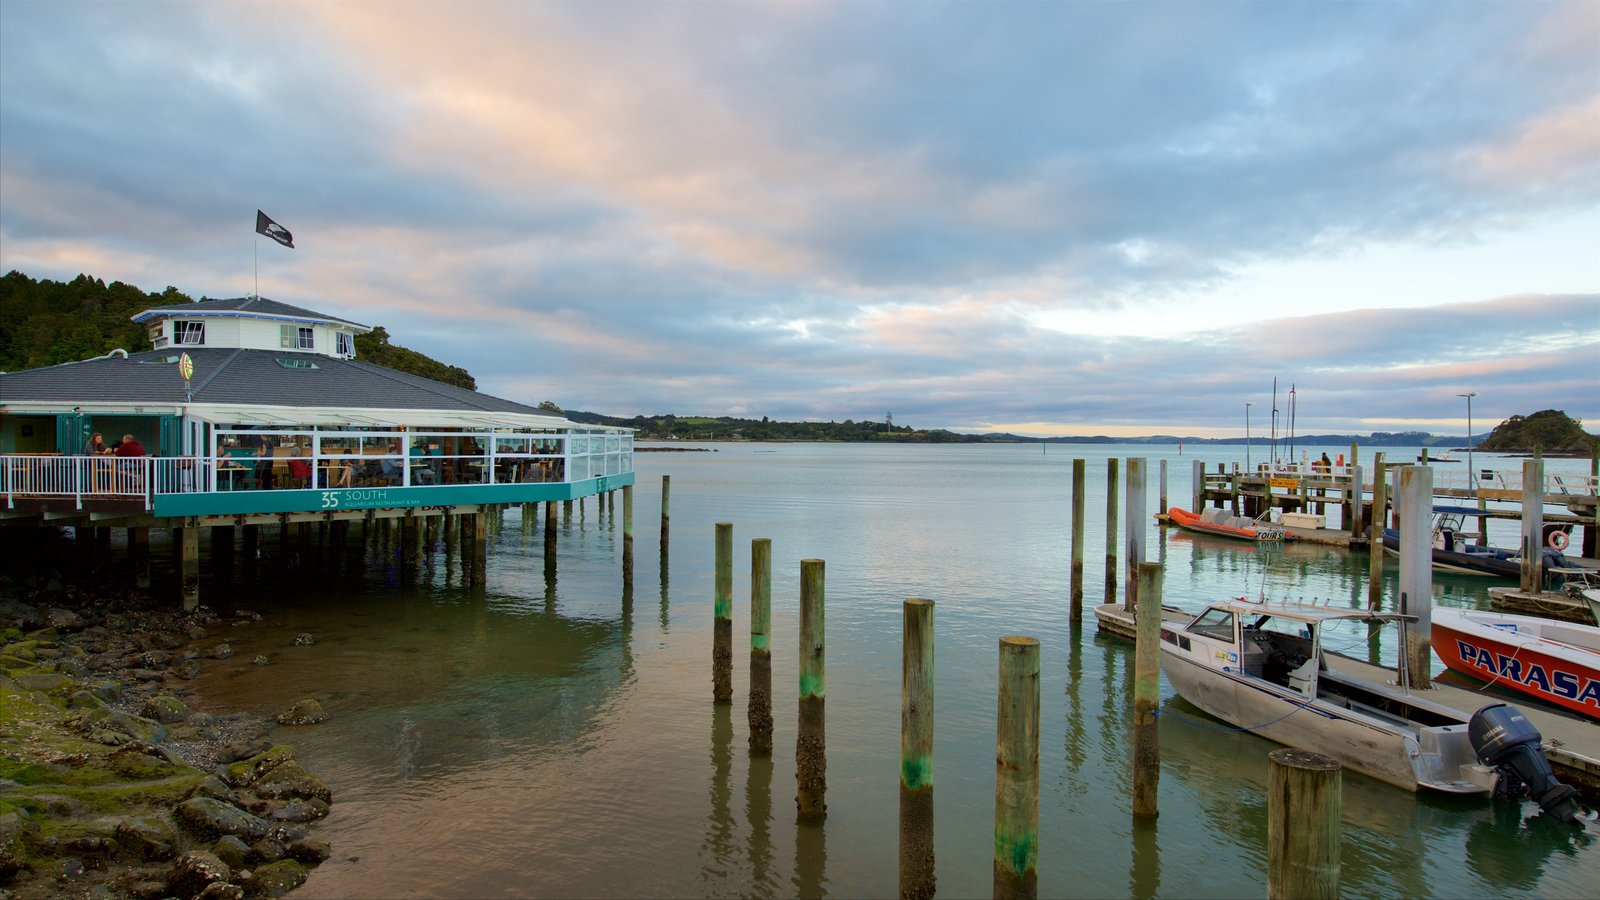 Paihia Wharf which includes a bay or harbor, a marina and a sunset